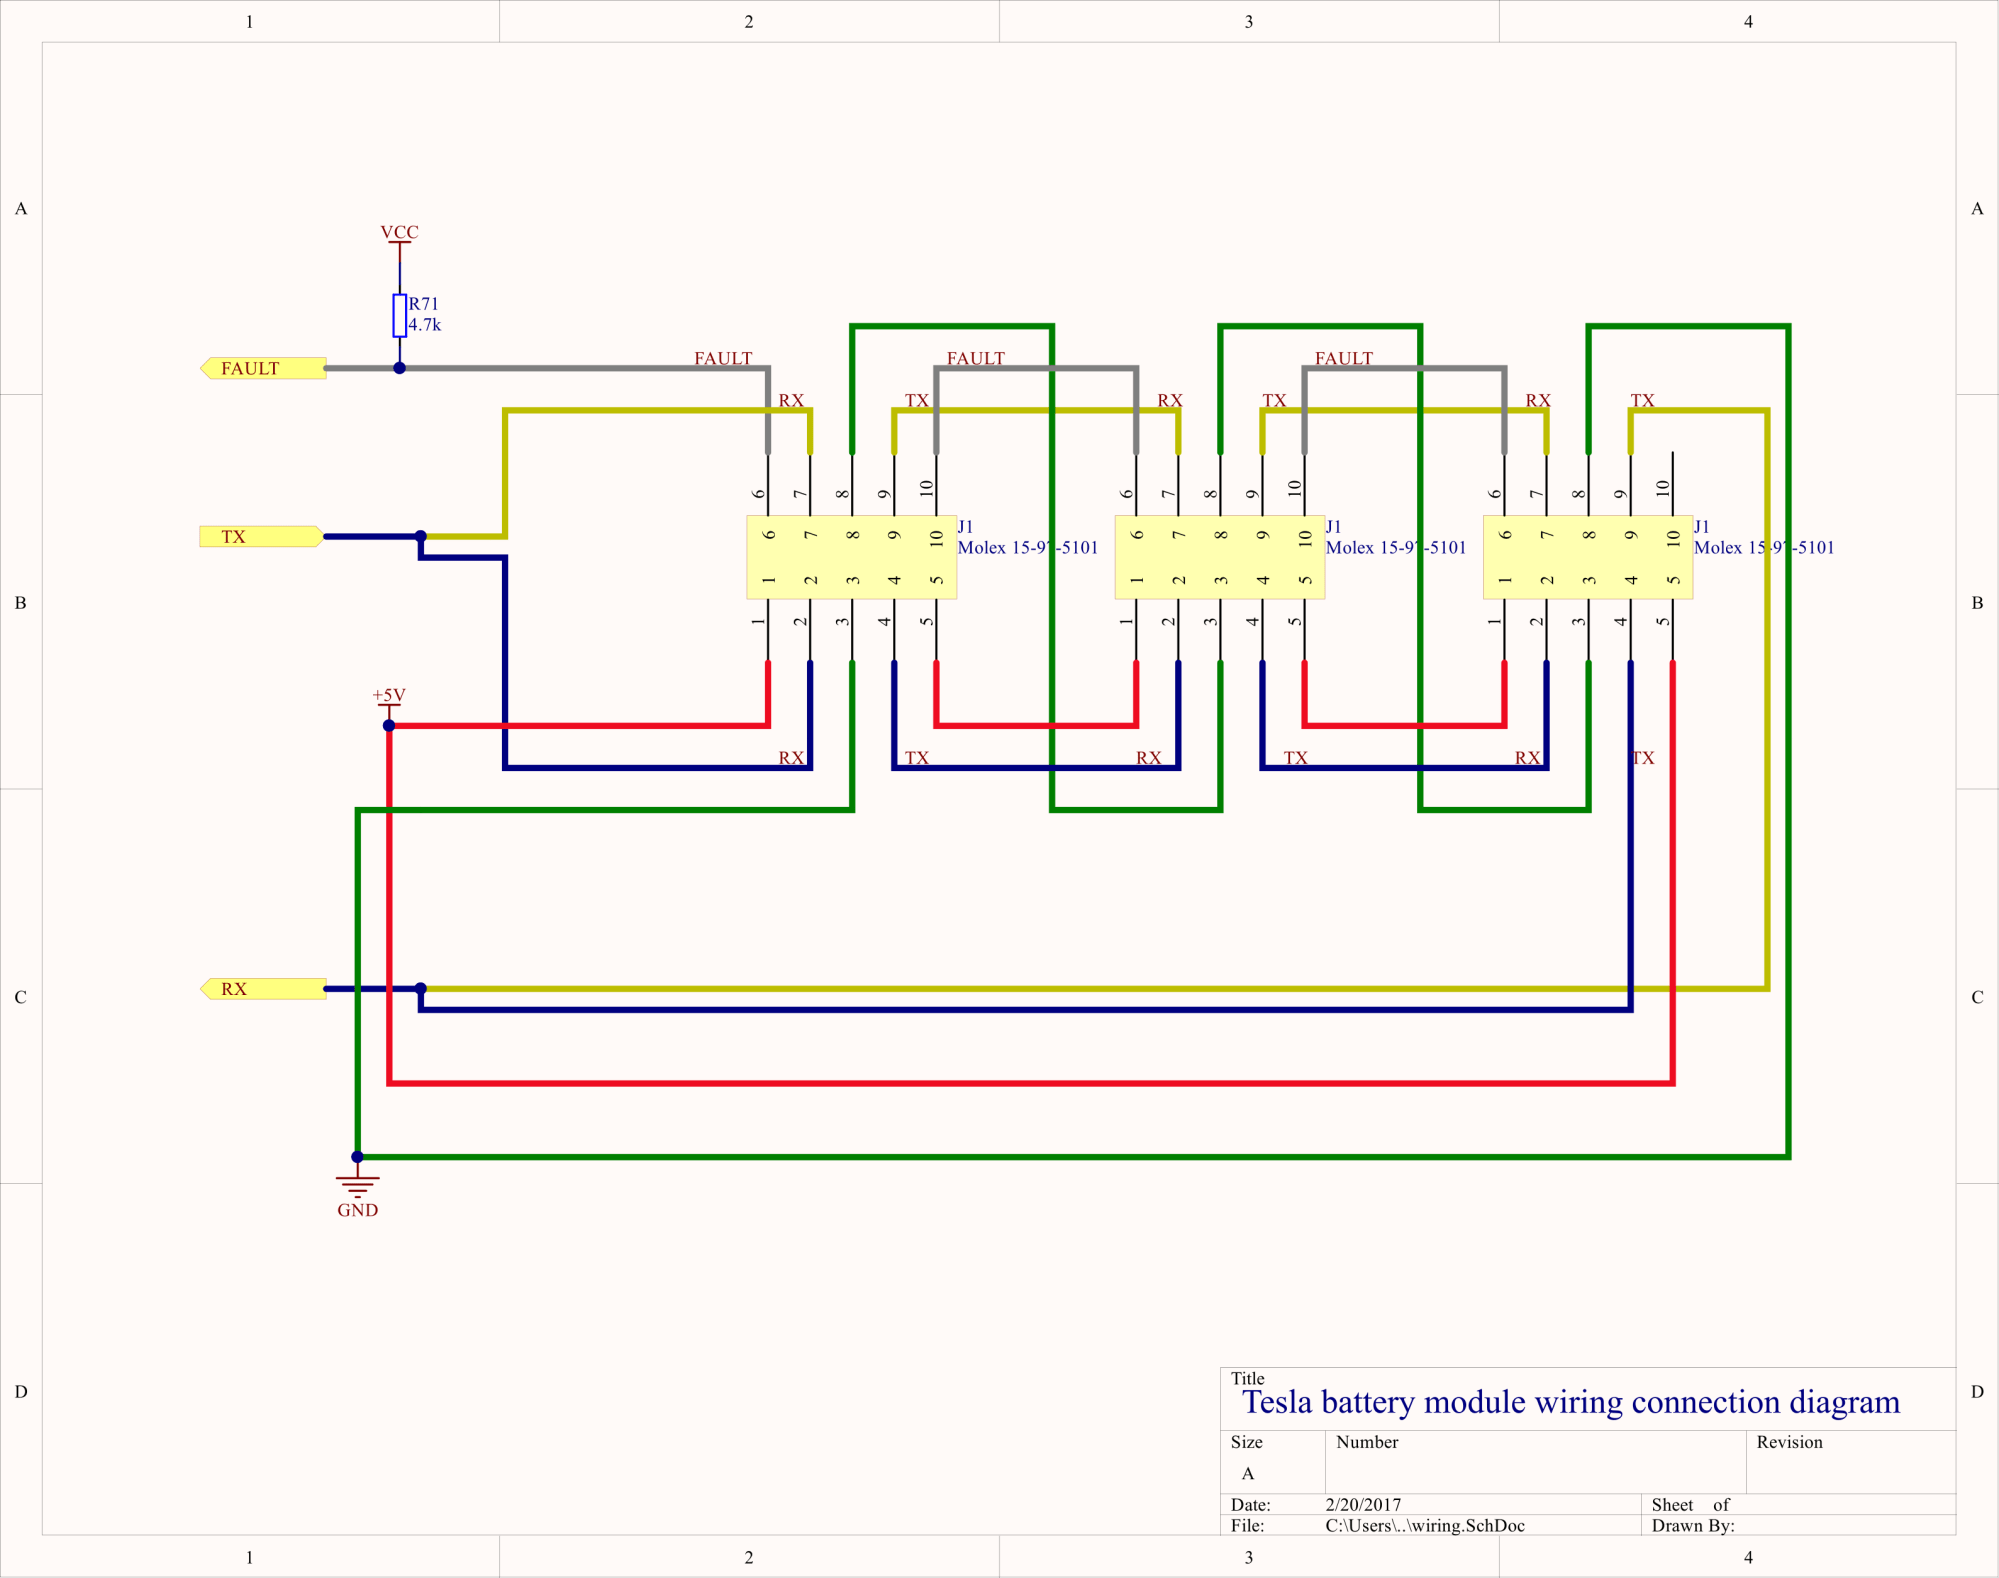 hight resolution of all this wiring is isolated from the cells so the gnd and 5v can safely be on the 12v wiring potential in an automotive application